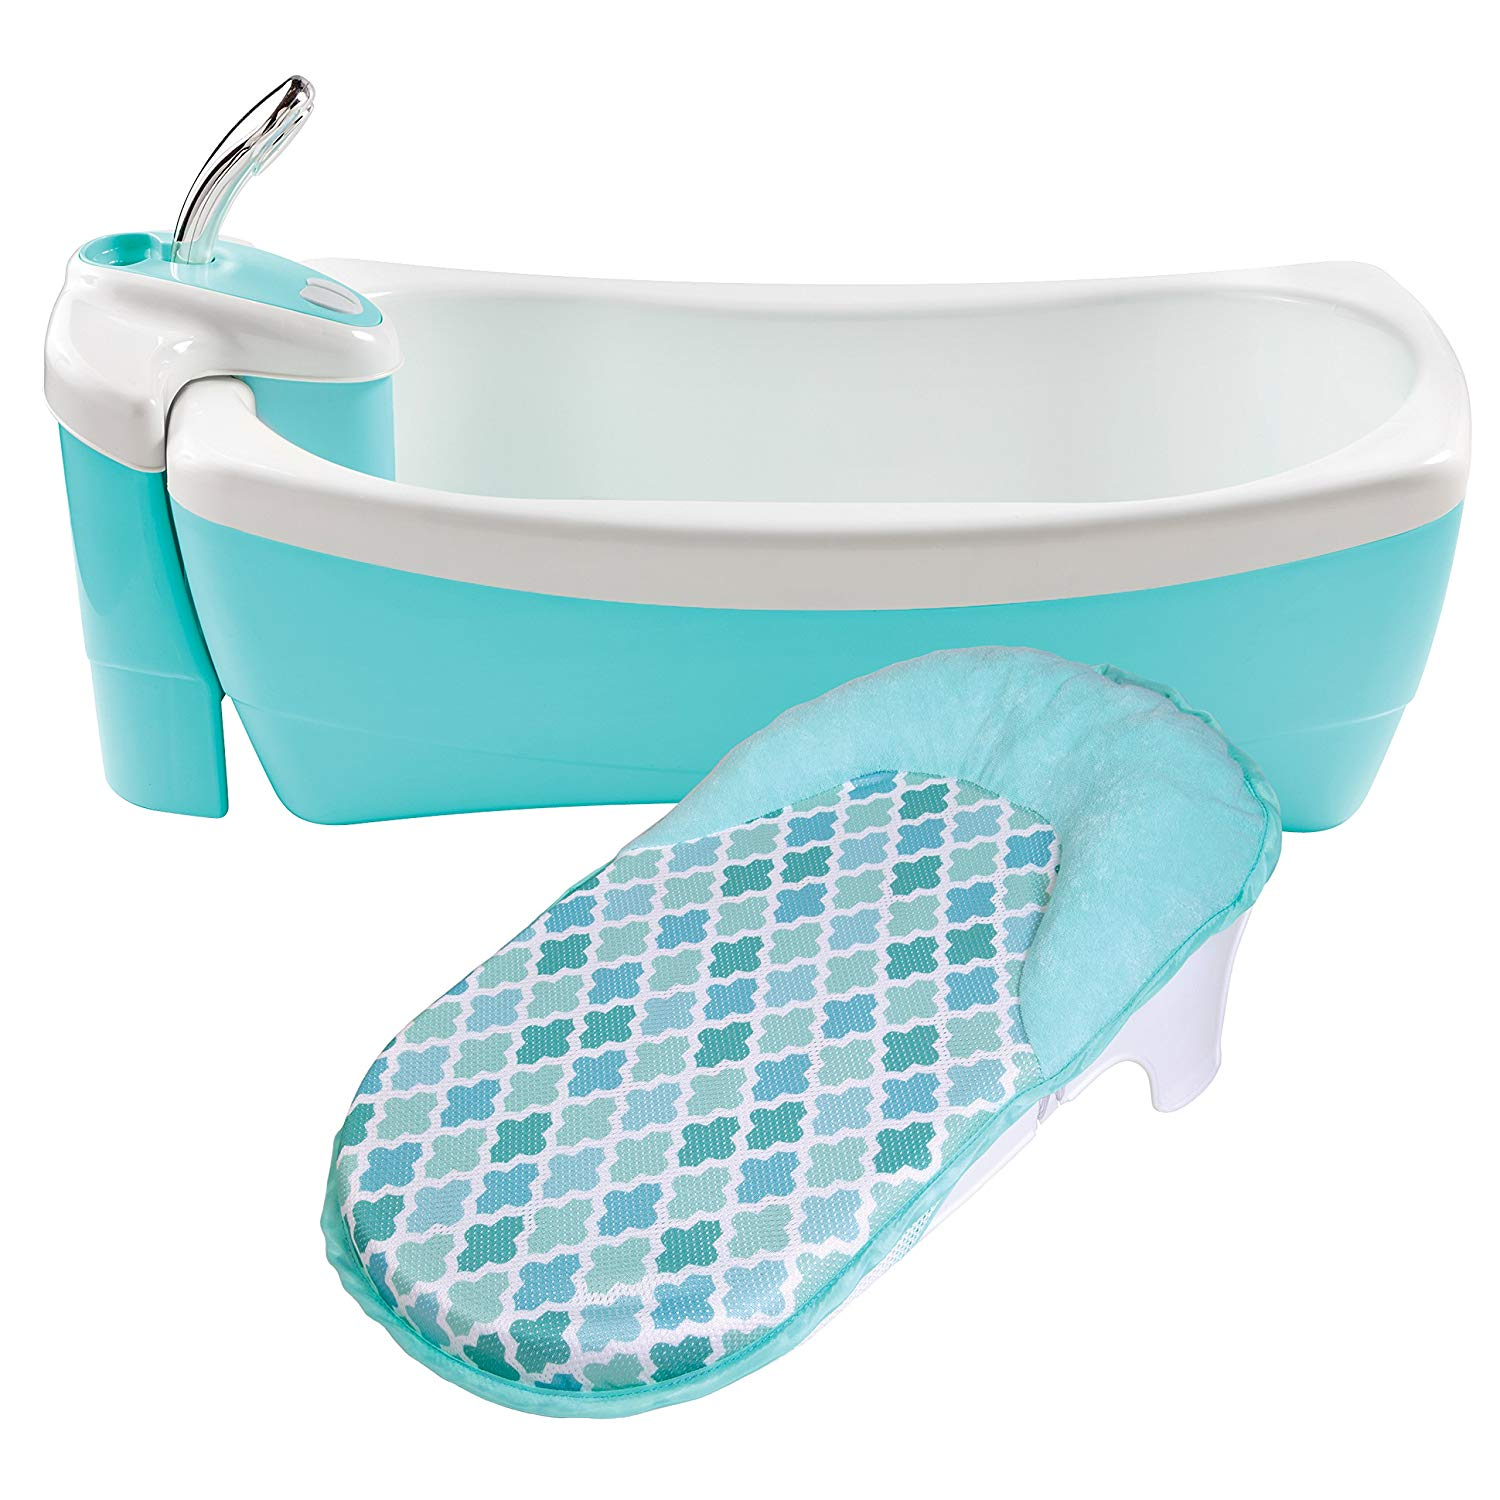 Lot 57 - Summer Infant Lil Luxuries Whirlpool Bubbling Spa/Shower RRP £69.99